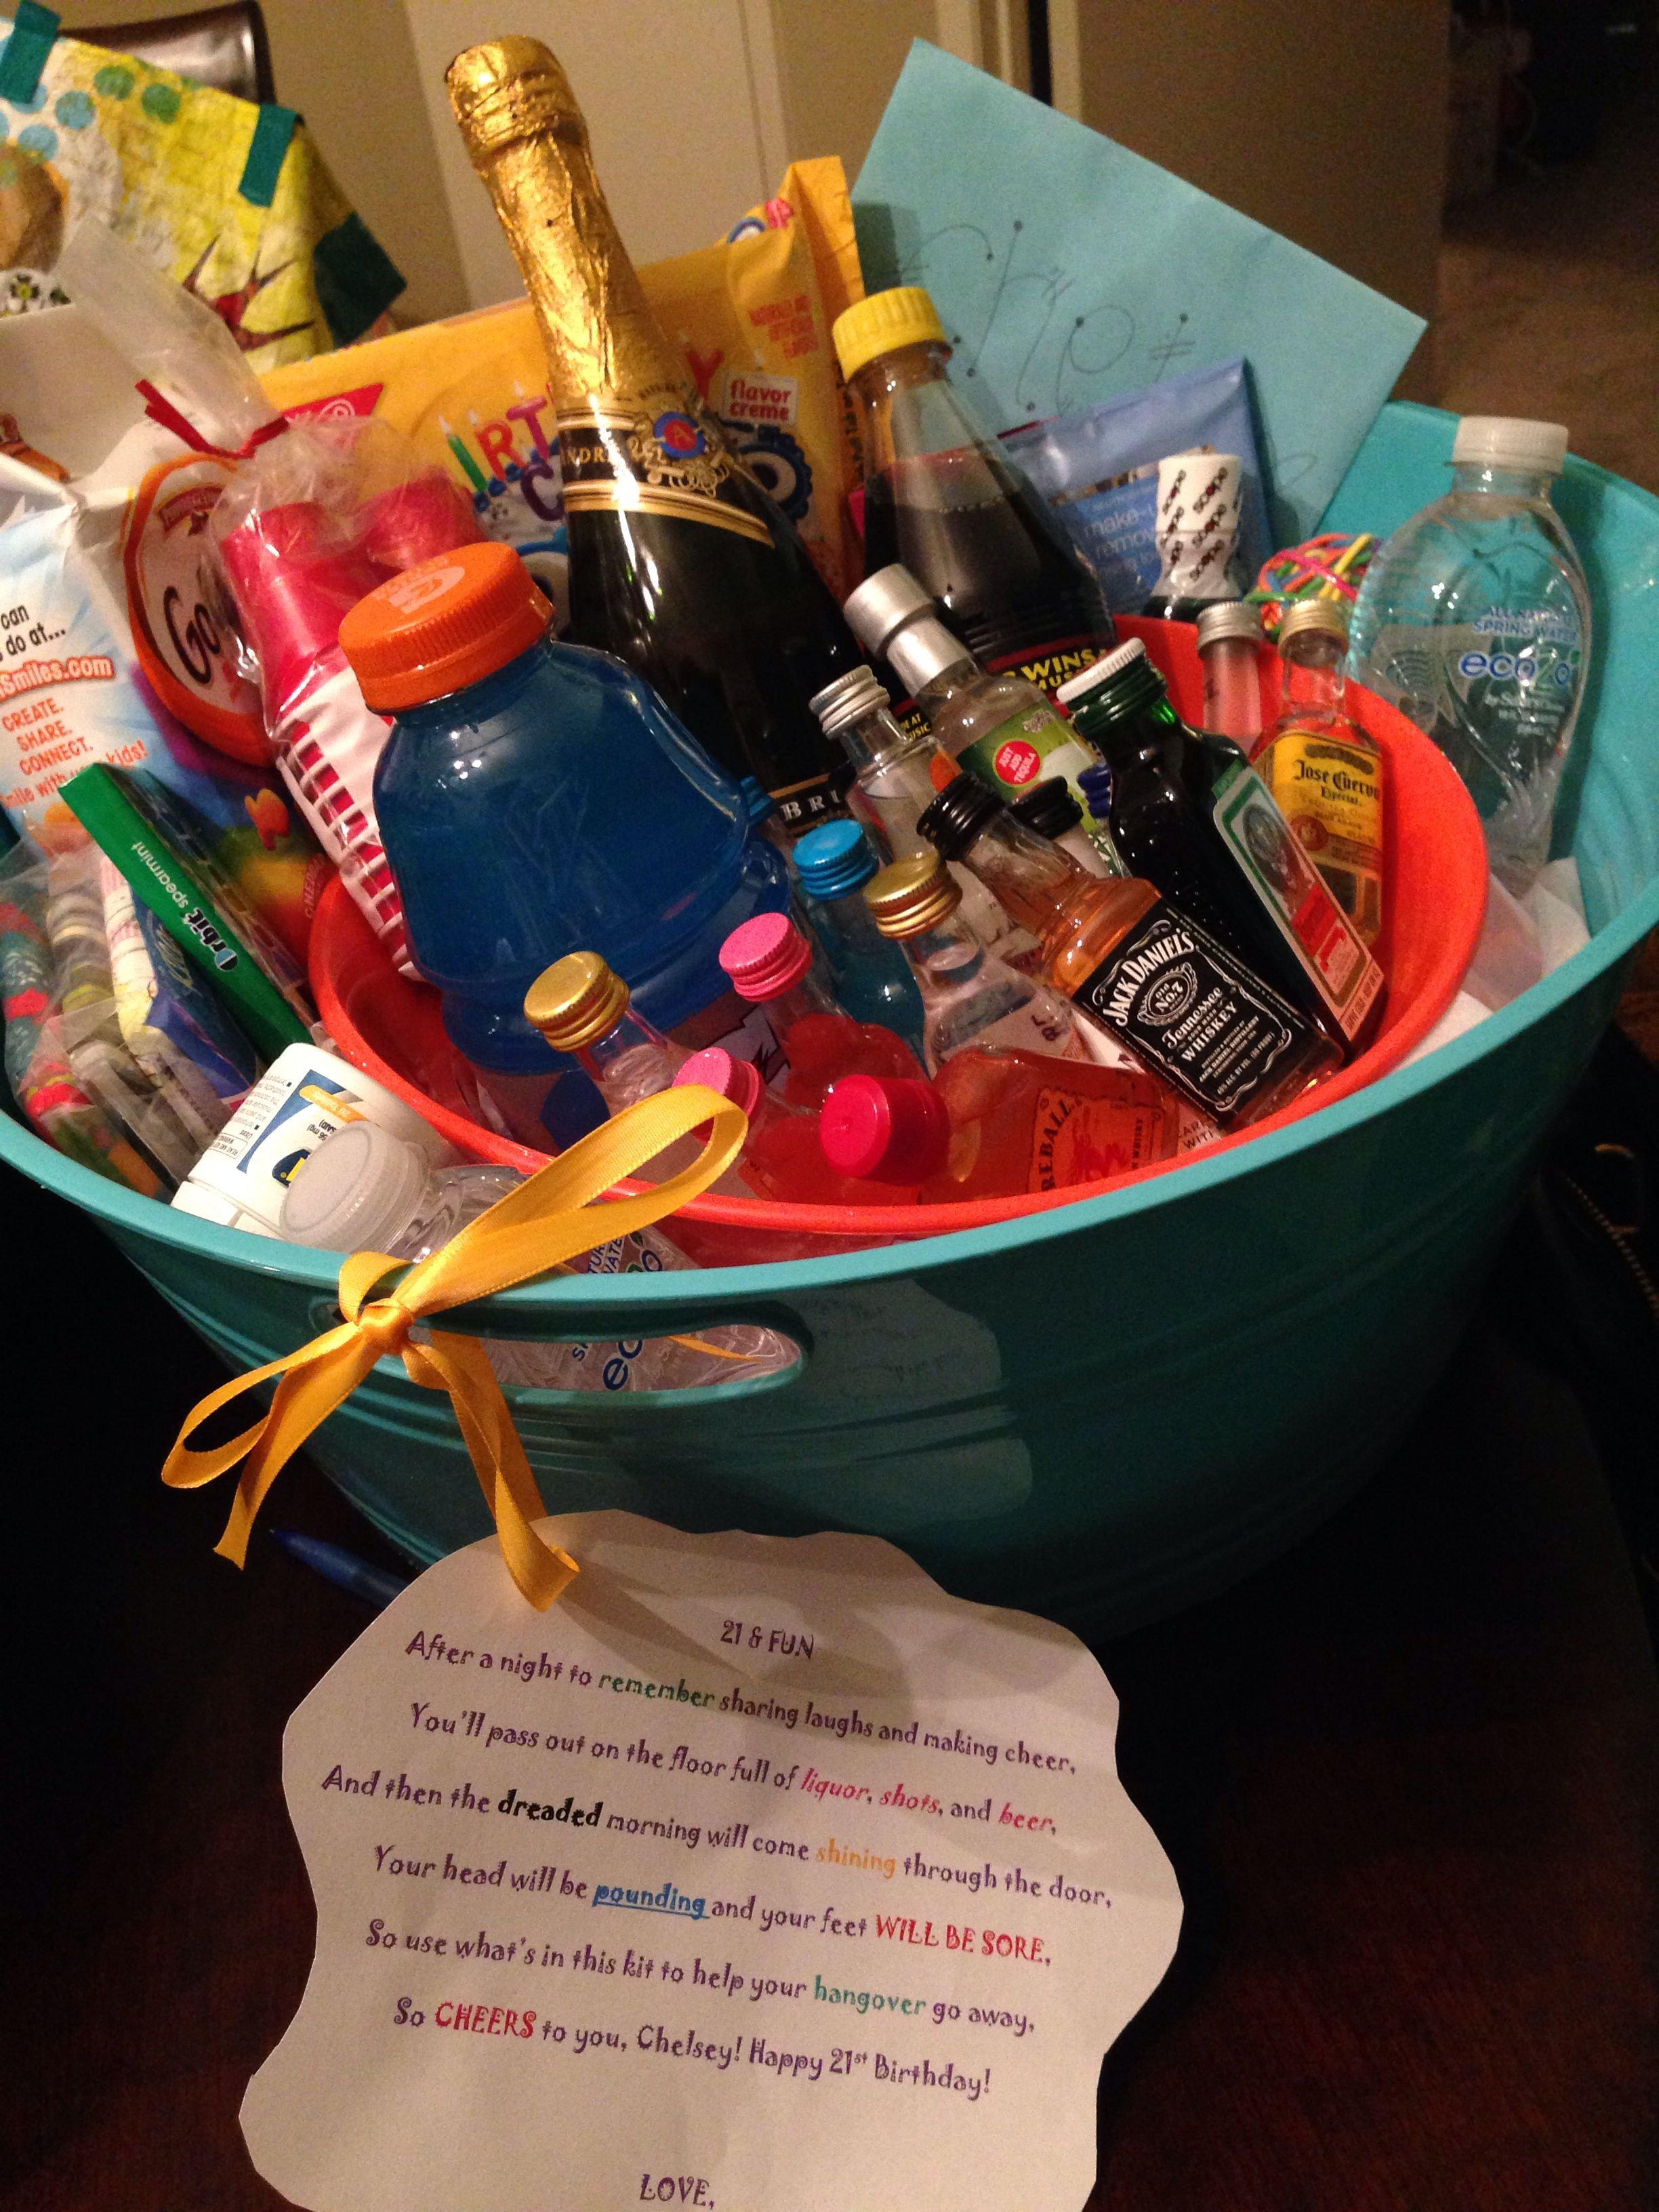 Pin By Samantha Holt On Gifts For The Guys And Gals Hangover Kit 21st Birthday 21st Birthday Good Birthday Presents